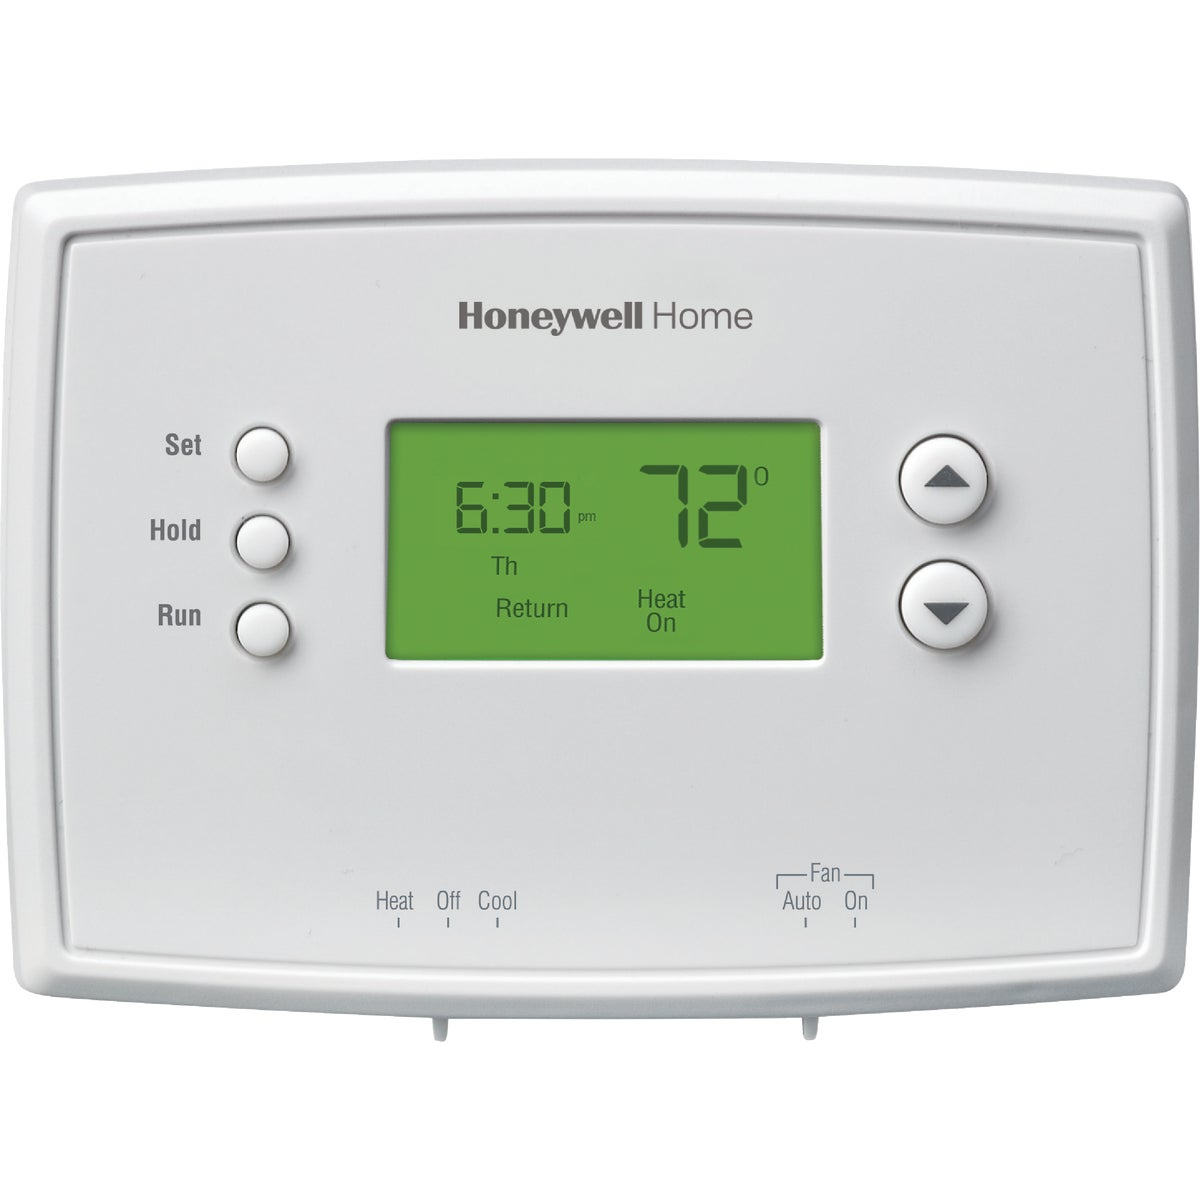 5-2 PROGRAM THERMOSTAT - RTH2300B1012 by Honeywell Internatl